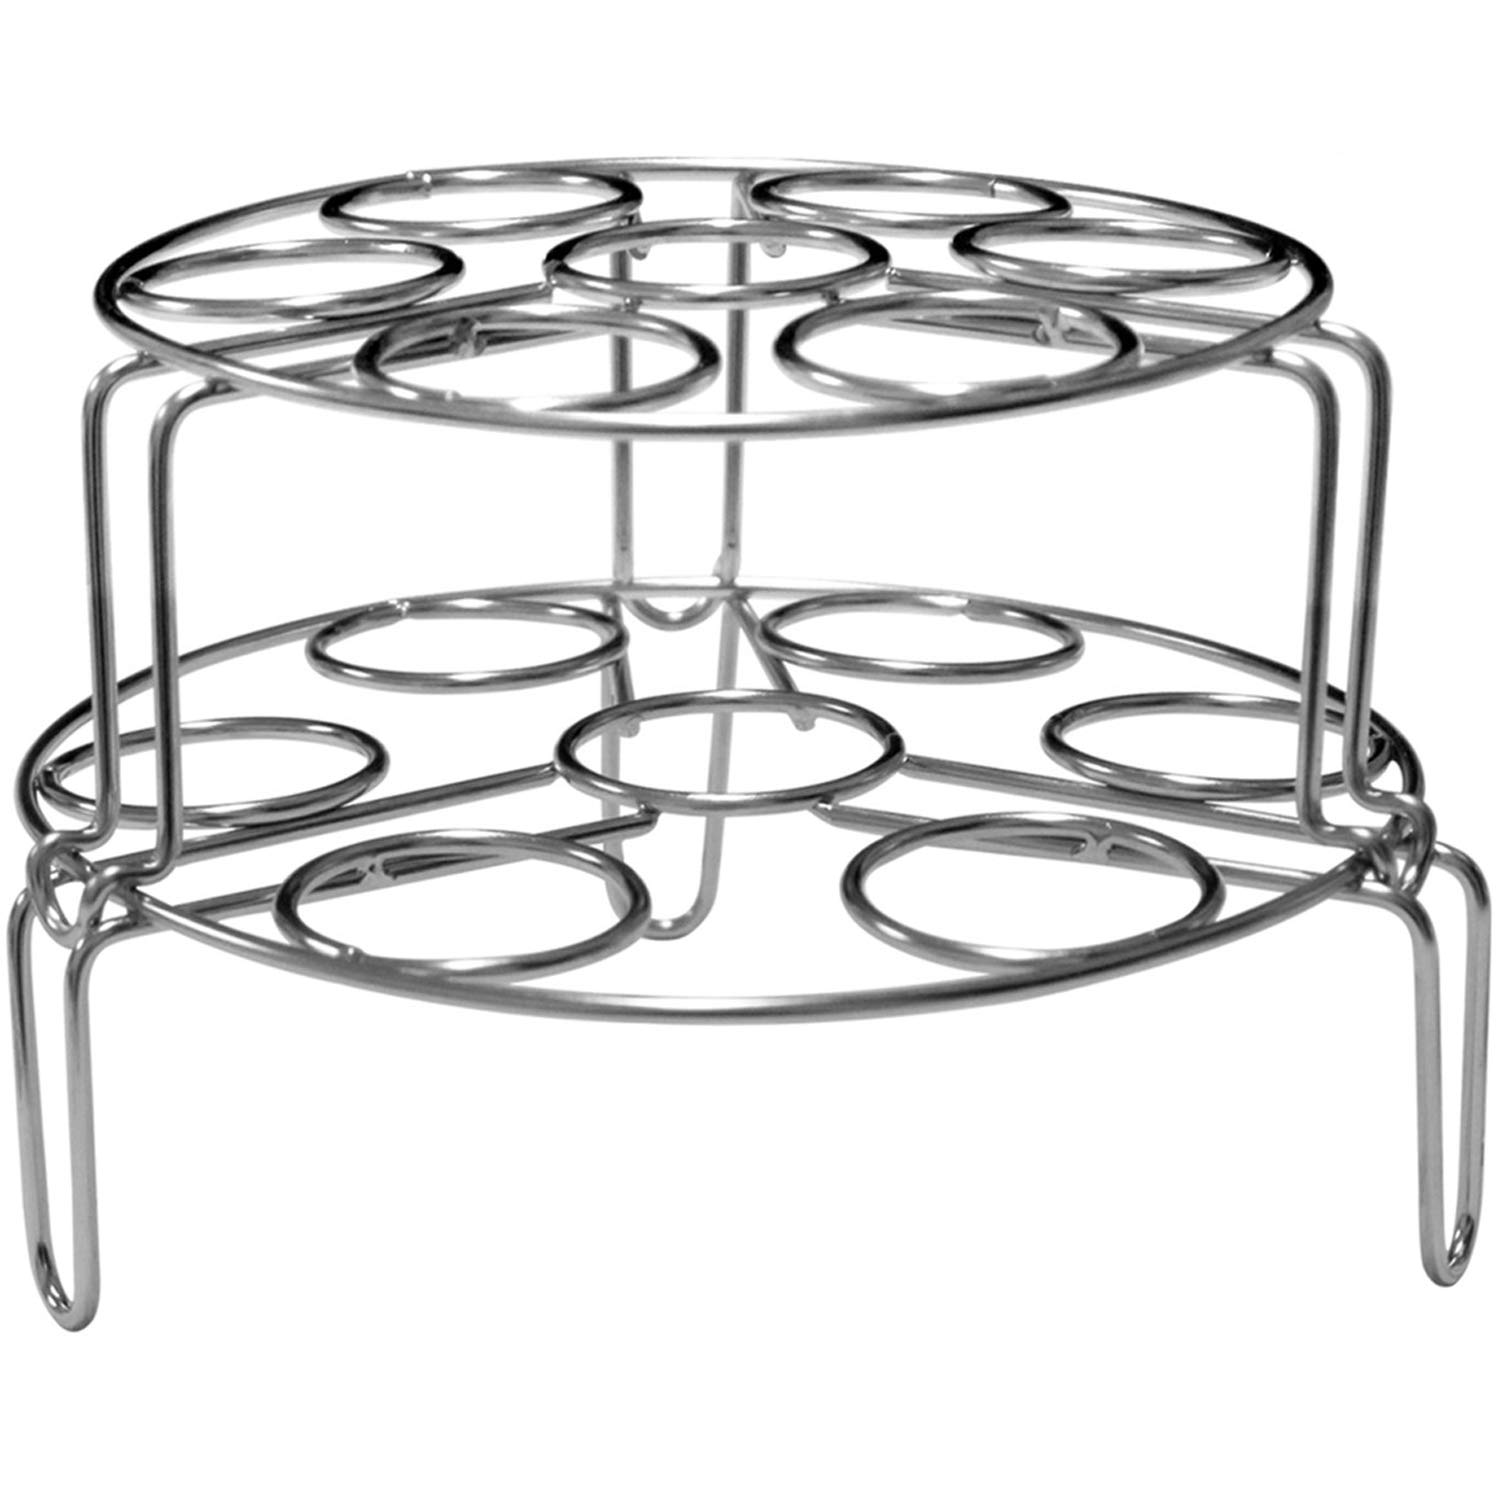 Egg Steamer Rack For Instant Pot Accessories Cooker Stackable Steamers Set - Mukool Kitchen Food Cookware Stainless Steel Pot Mini Small Steamers Rack Basket Egg Cooker 6 8 quart Seafood Vegetable